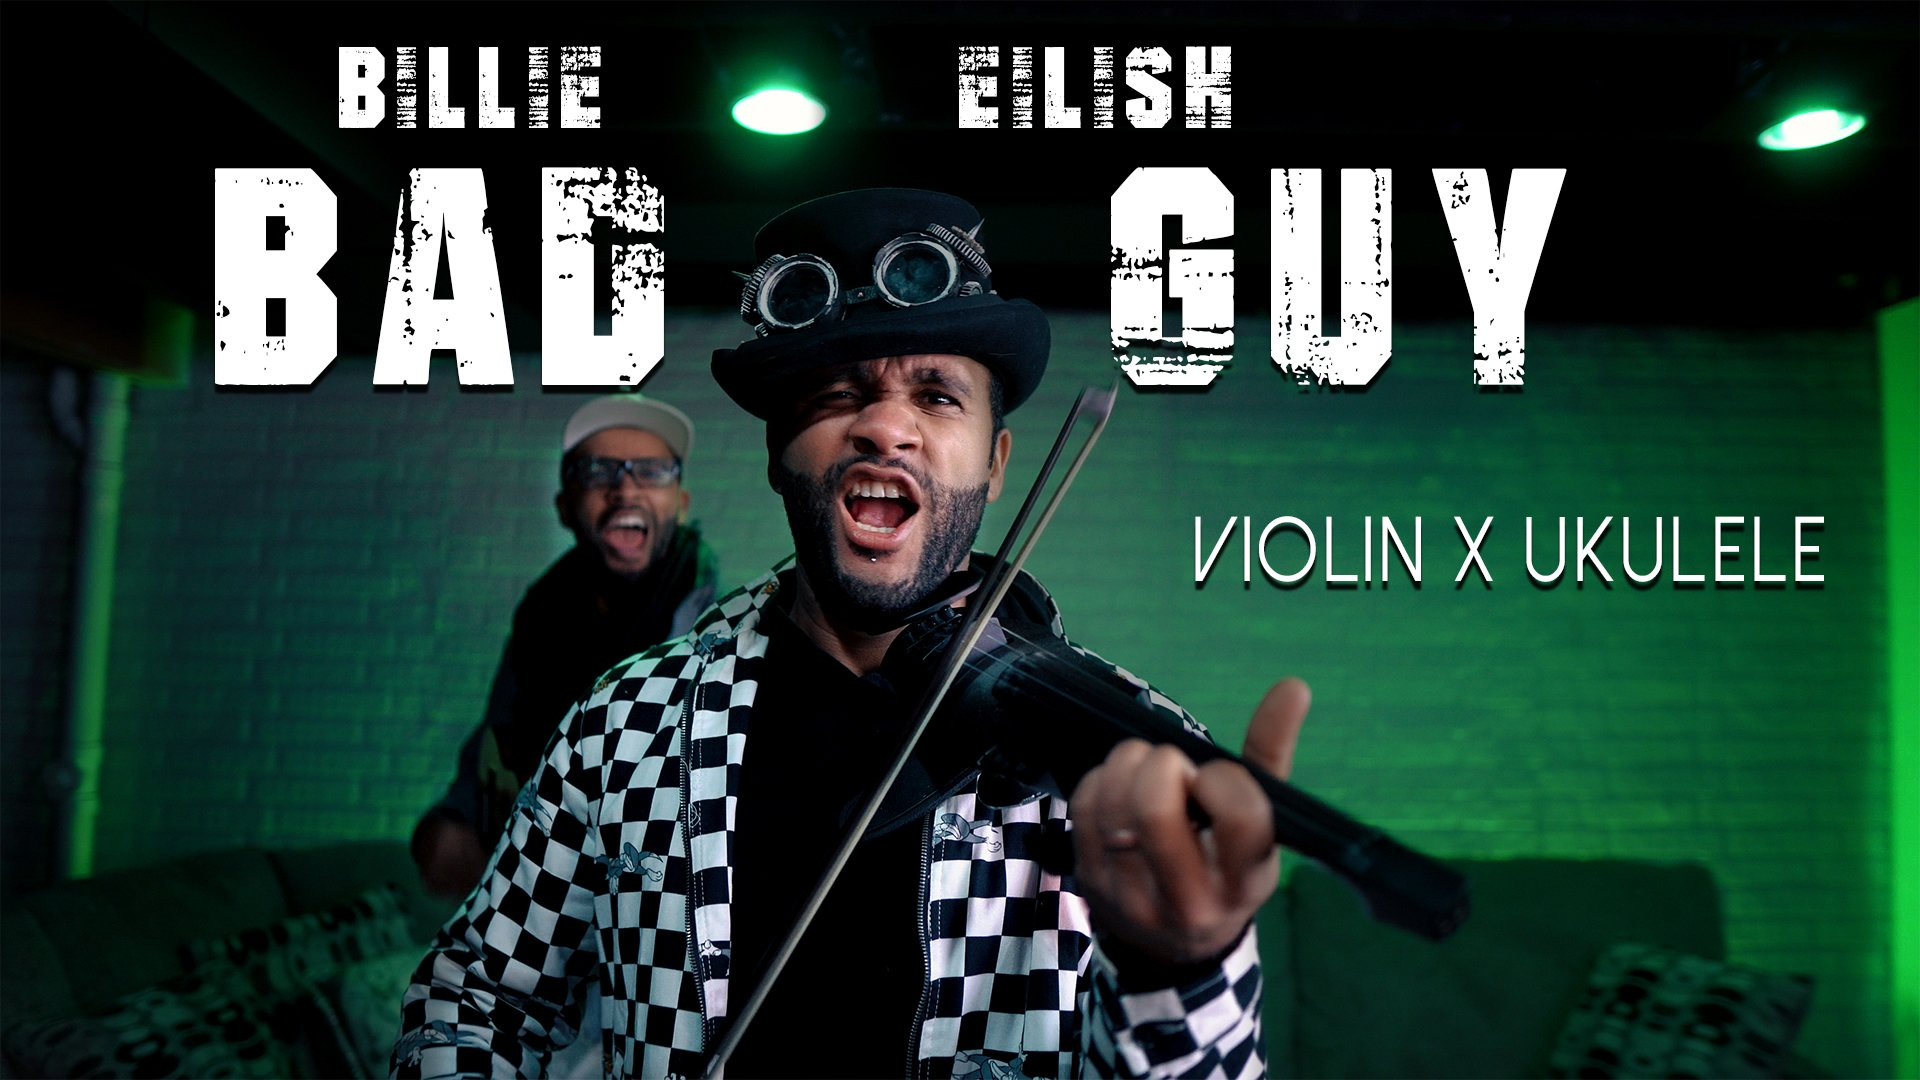 bad guy cover billie eilish b2wins violin ukulele